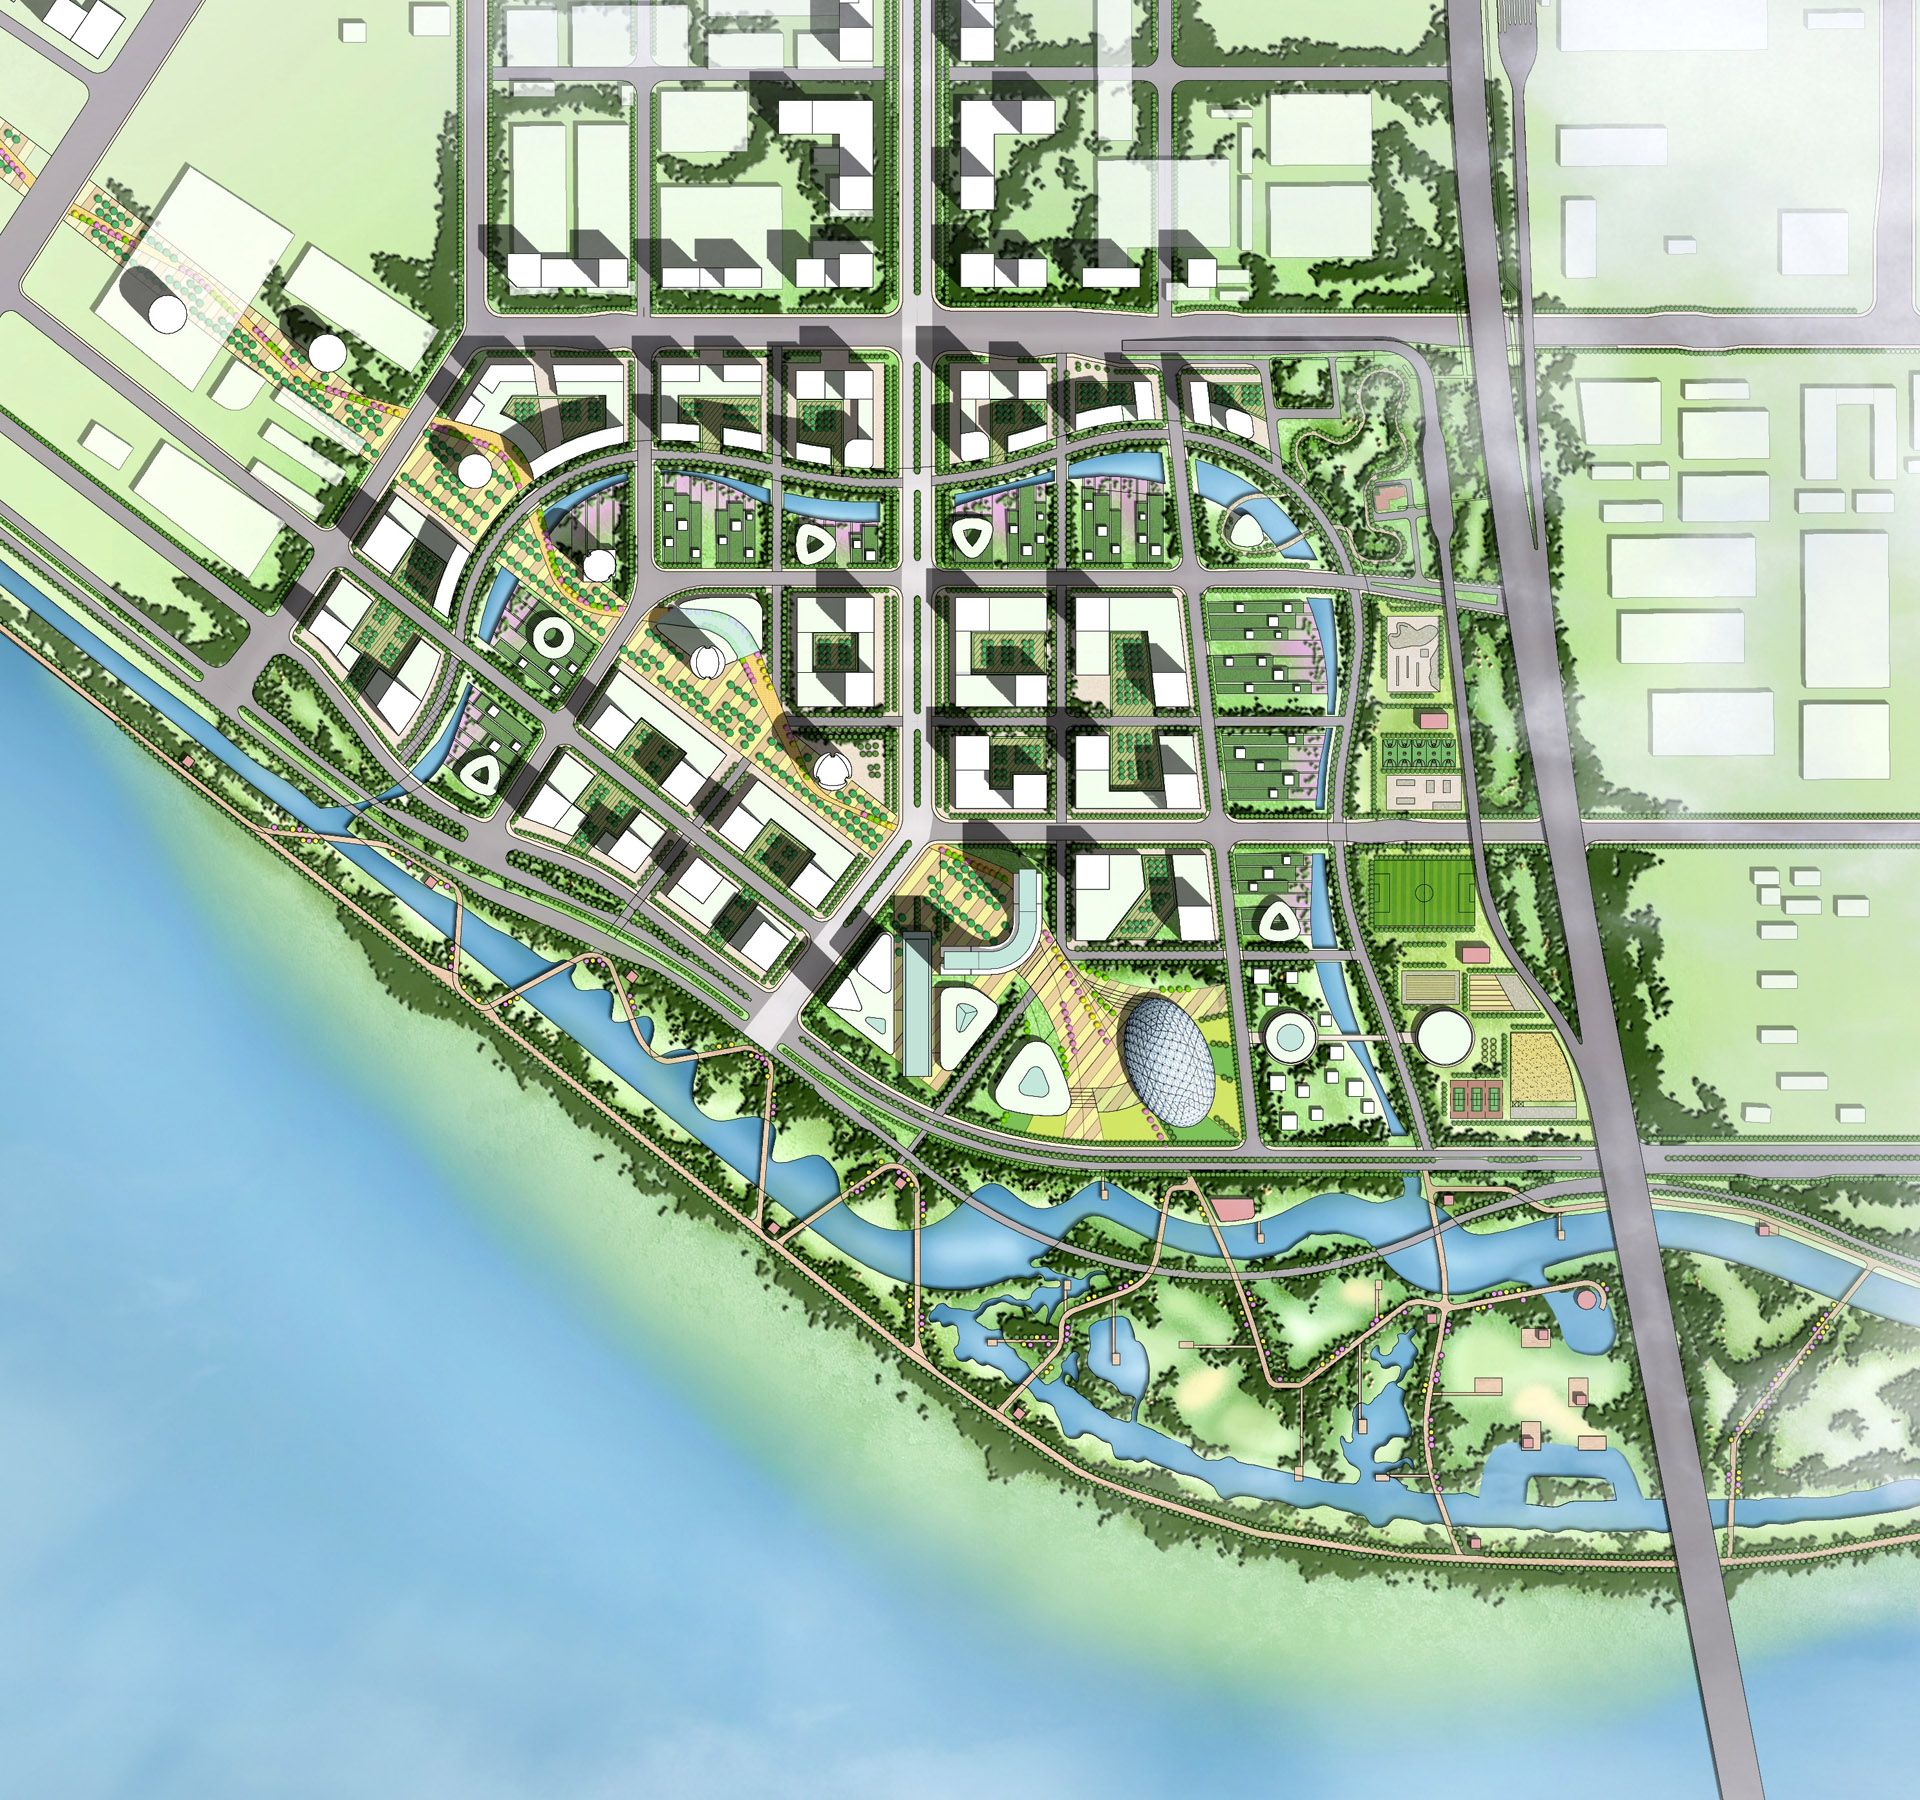 Xiasha eco business park wins 2013 aiacc award for urban for Planner design